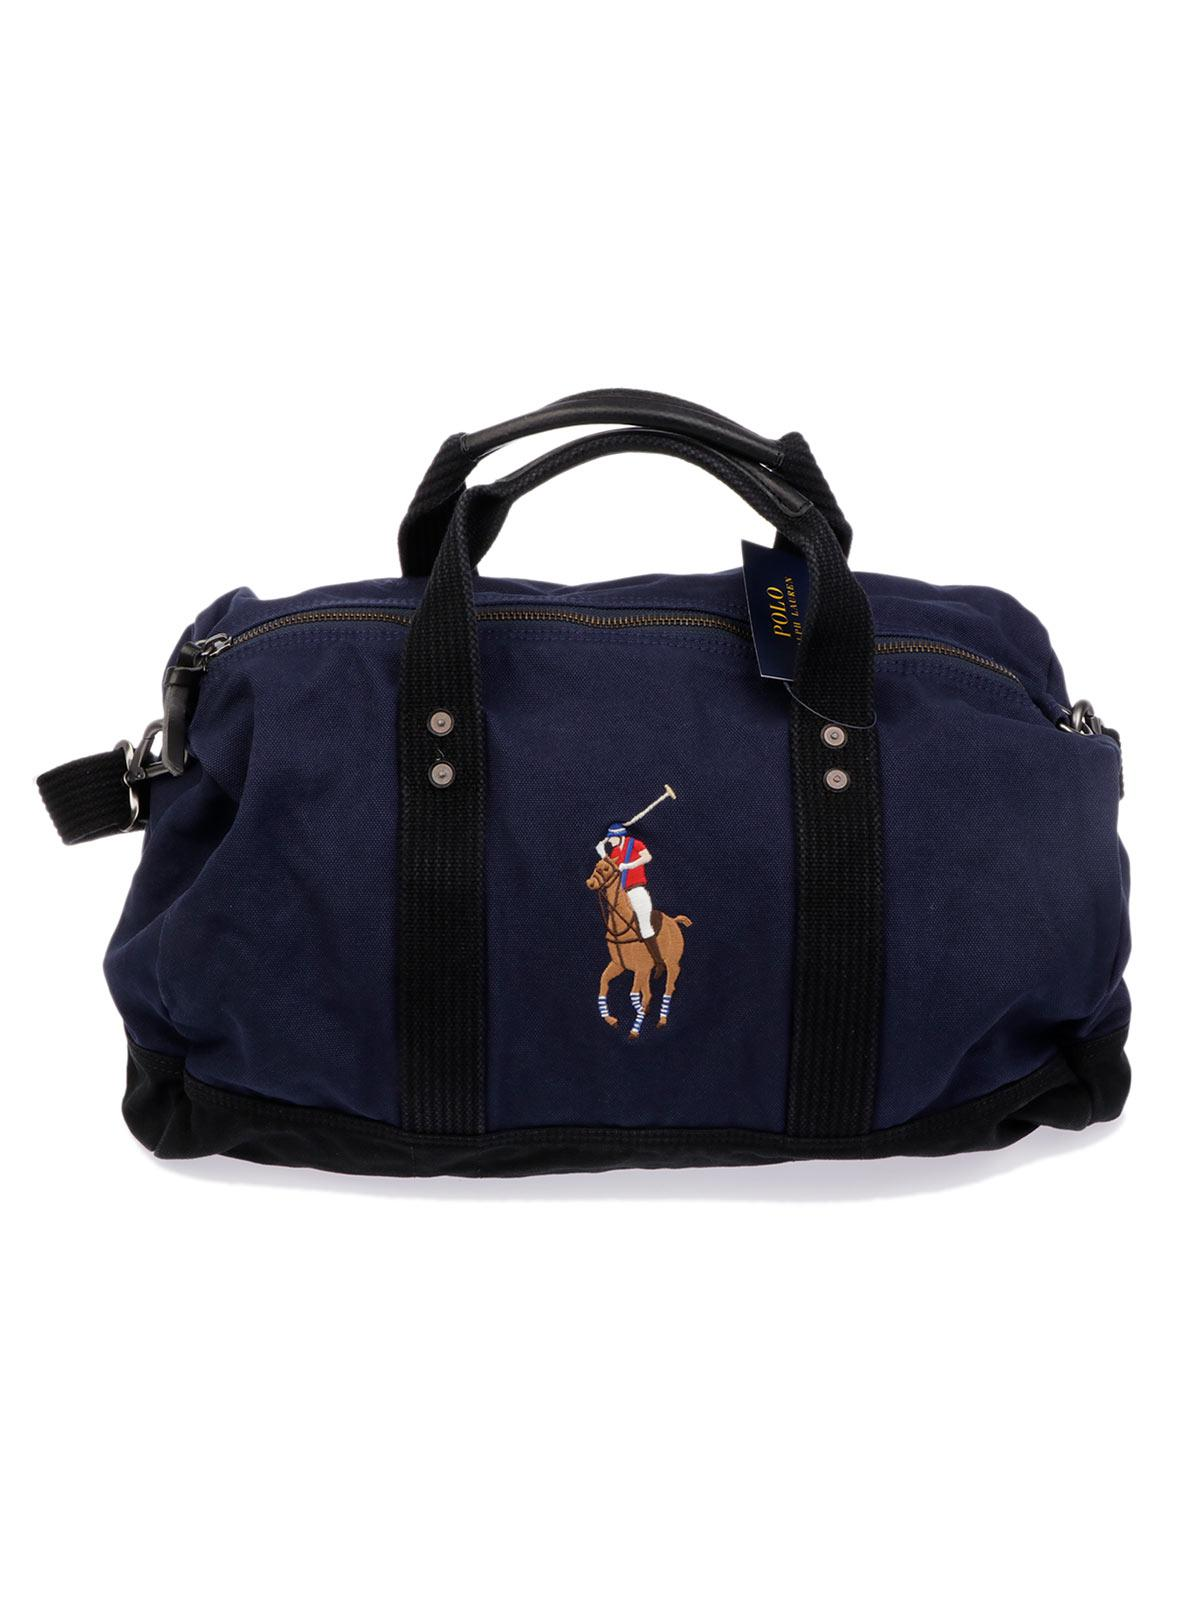 8d5fbb6cdc3f0 Lyst - Polo Ralph Lauren Borsa in Blue for Men